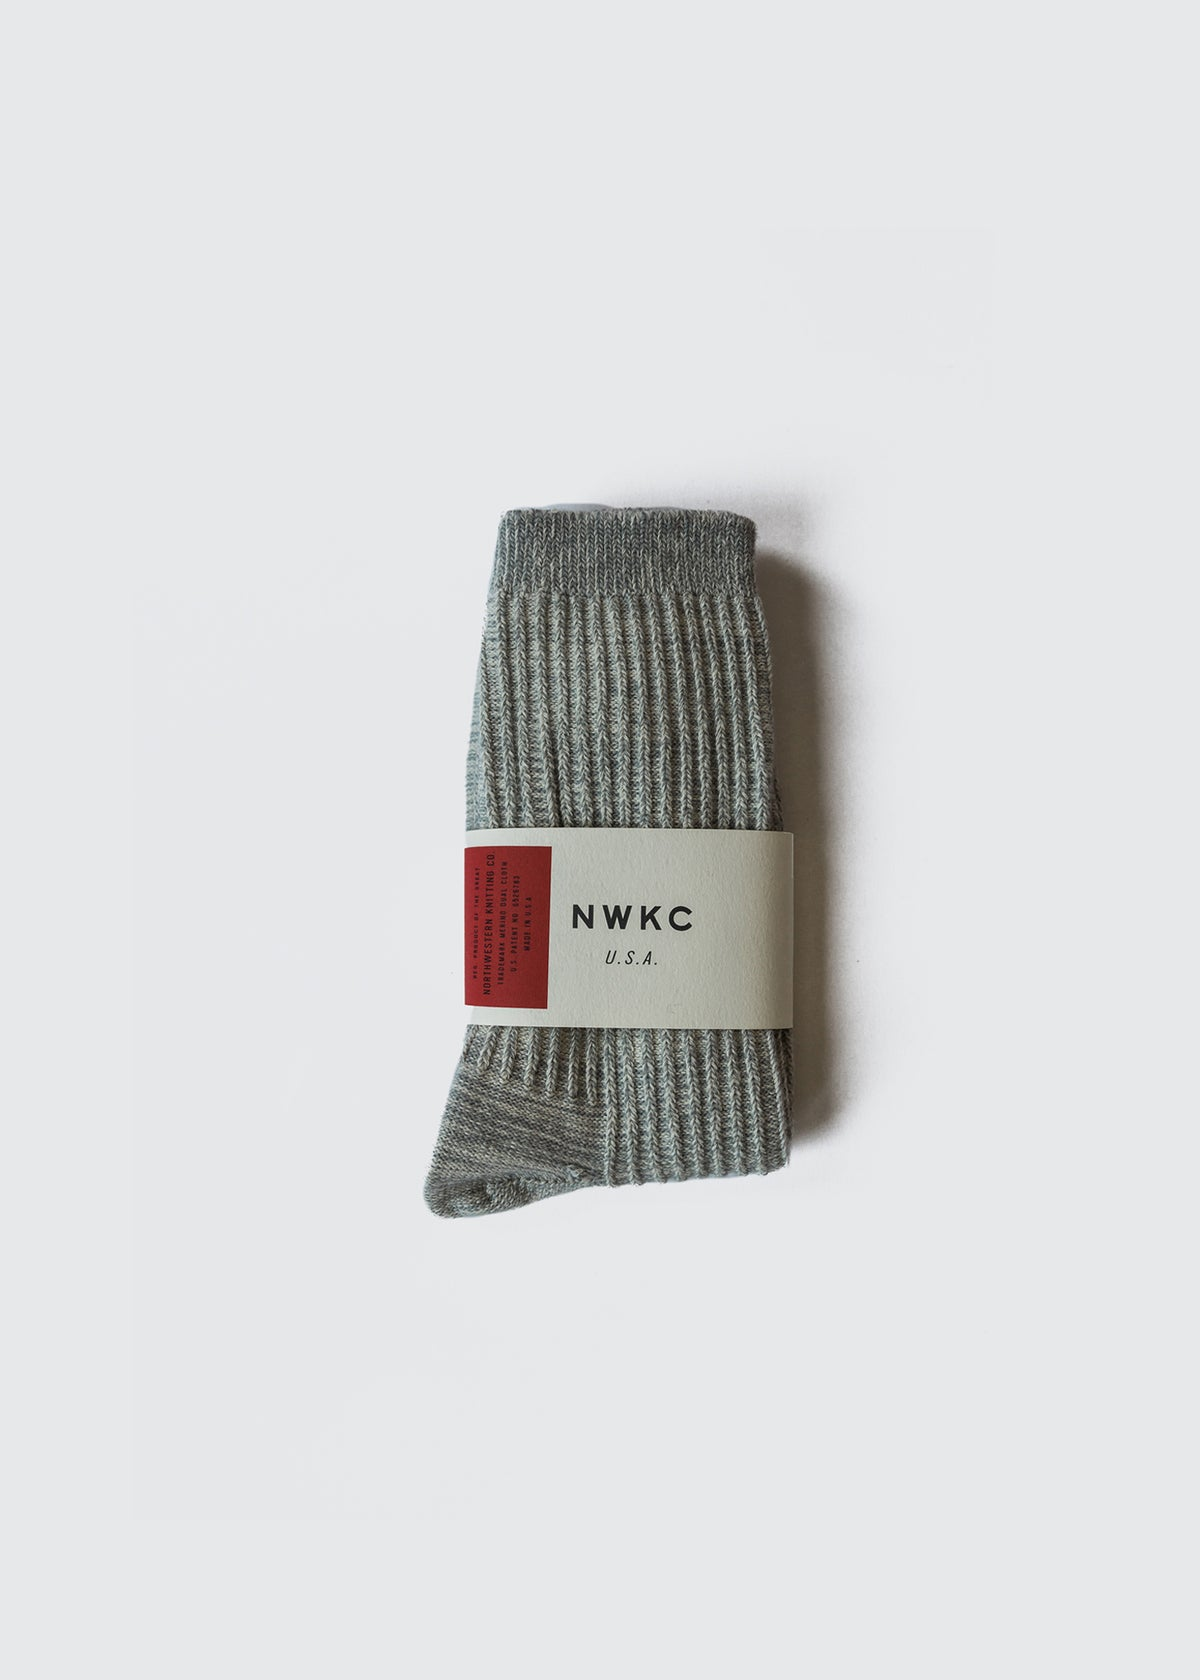 A01 - SOCK - GRAY - Wilson & Willy's - MPLS Neighbor Goods